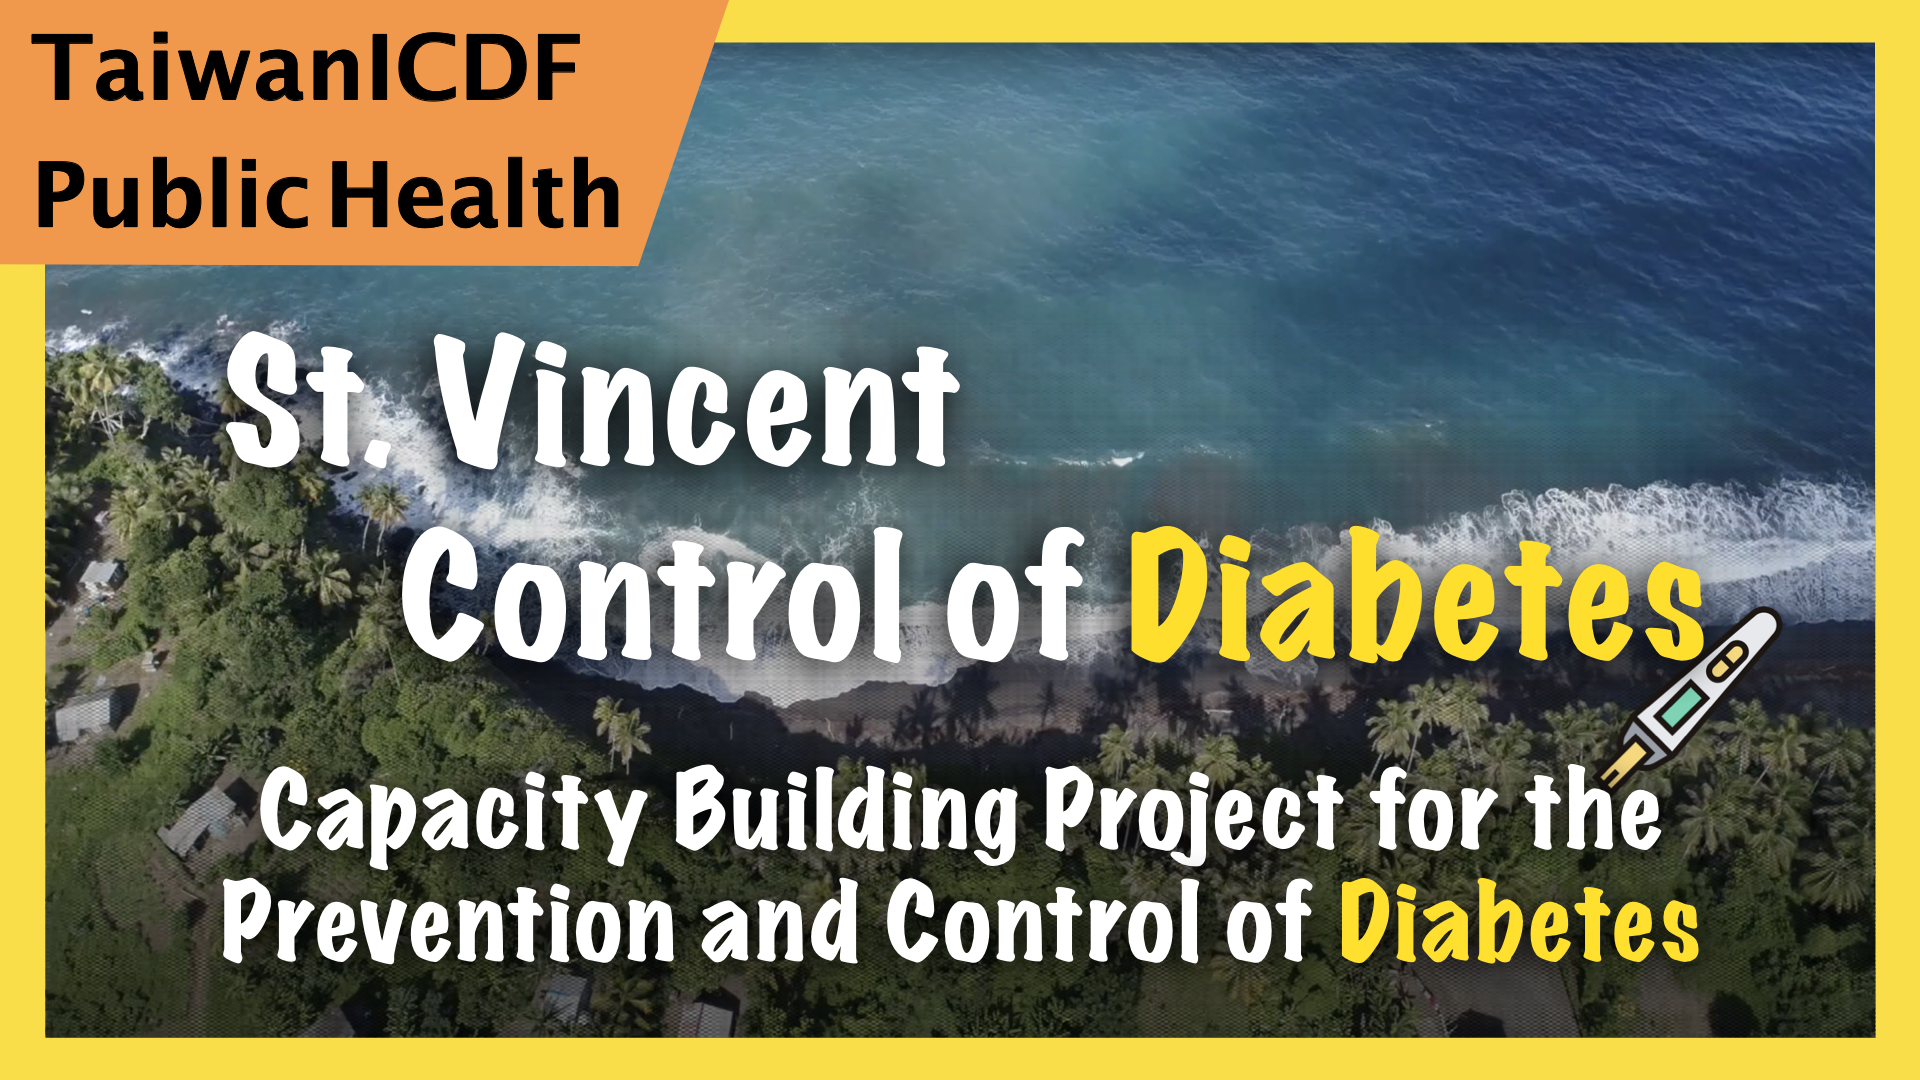 Capacity Building Project for the Prevention and Control of Diabetes in St. Vincent